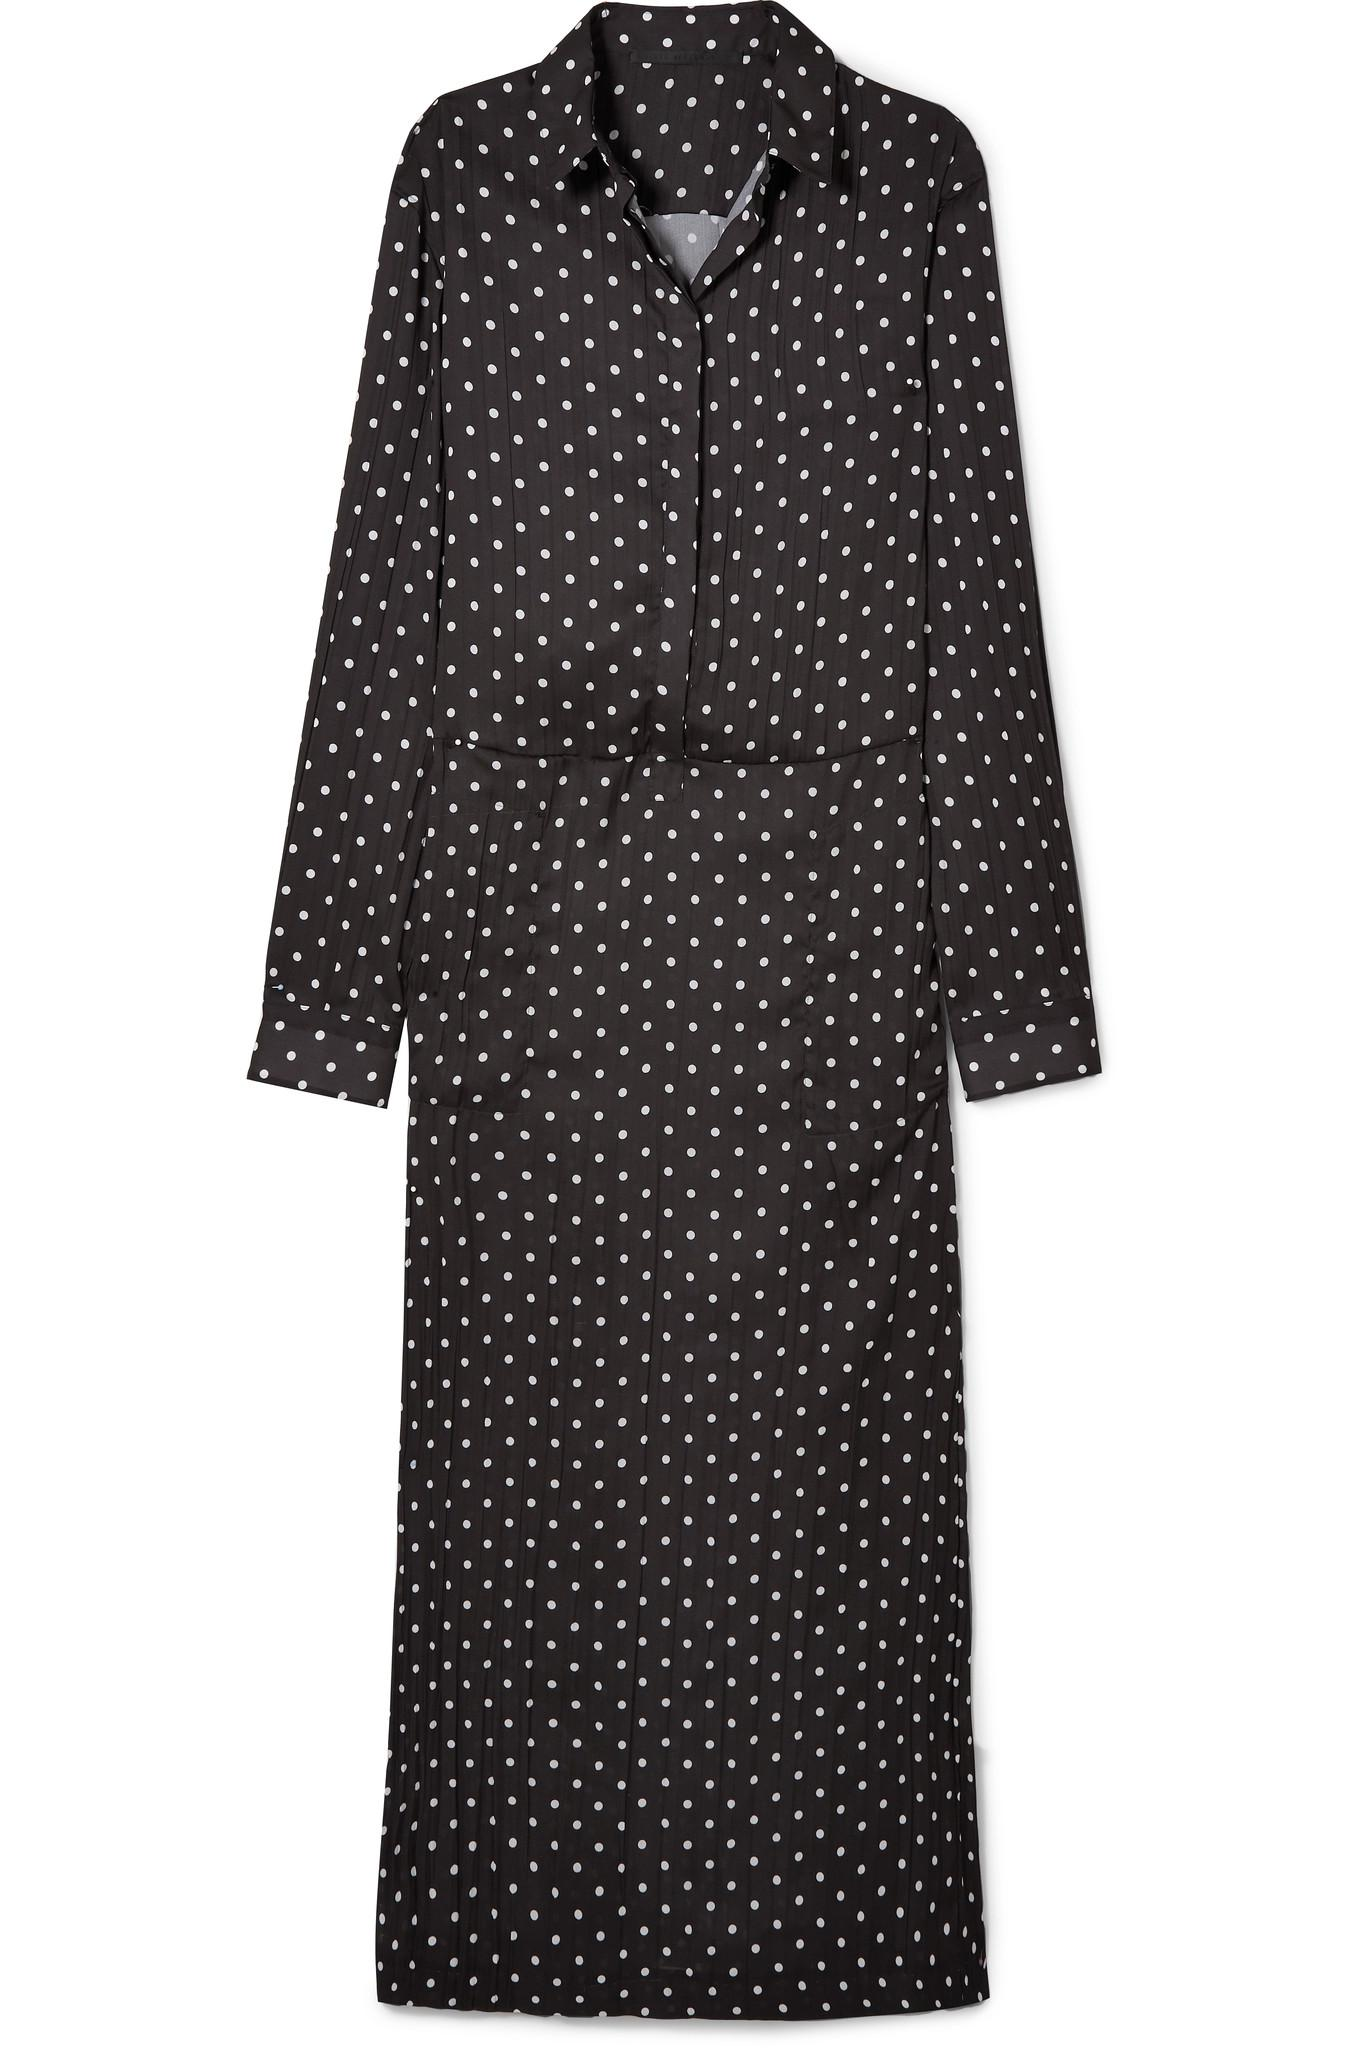 Polka-dot Crepe Dress - Black Haider Ackermann 100% Guaranteed Cheap Online Wholesale Price Online Cheap Sale Sale With Mastercard Sale Online Original Cheap Online jLRWT